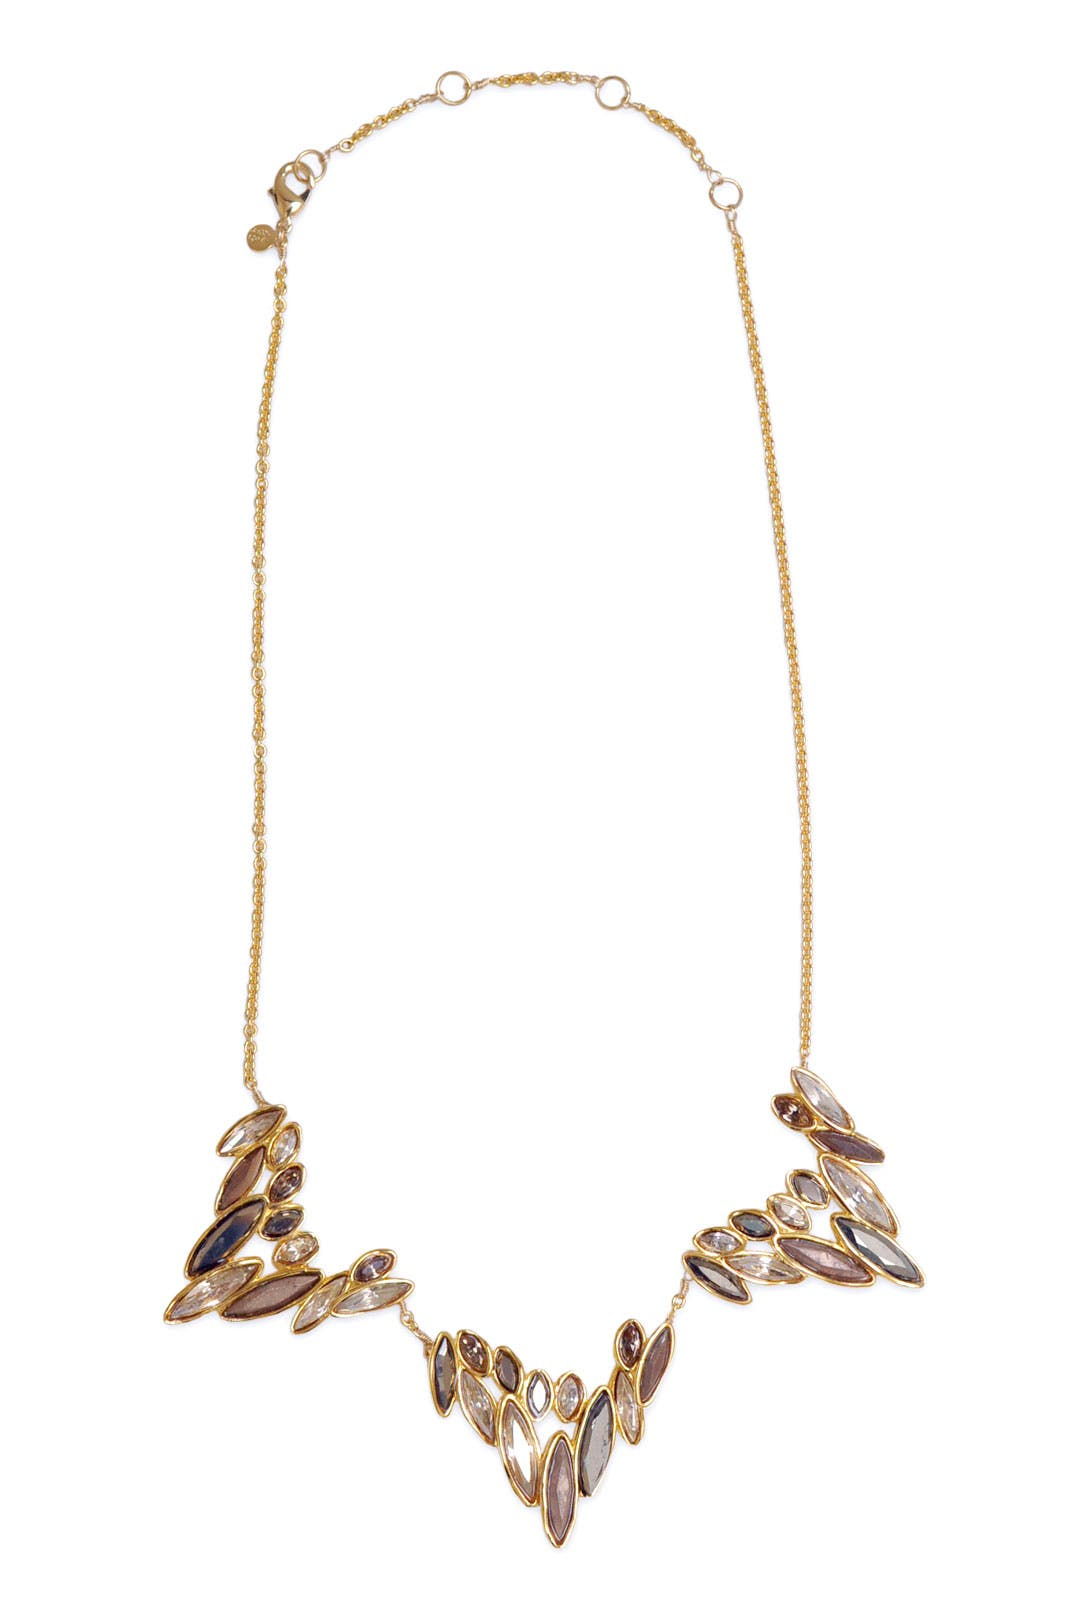 Triple Mosaic Necklace by Alexis Bittar